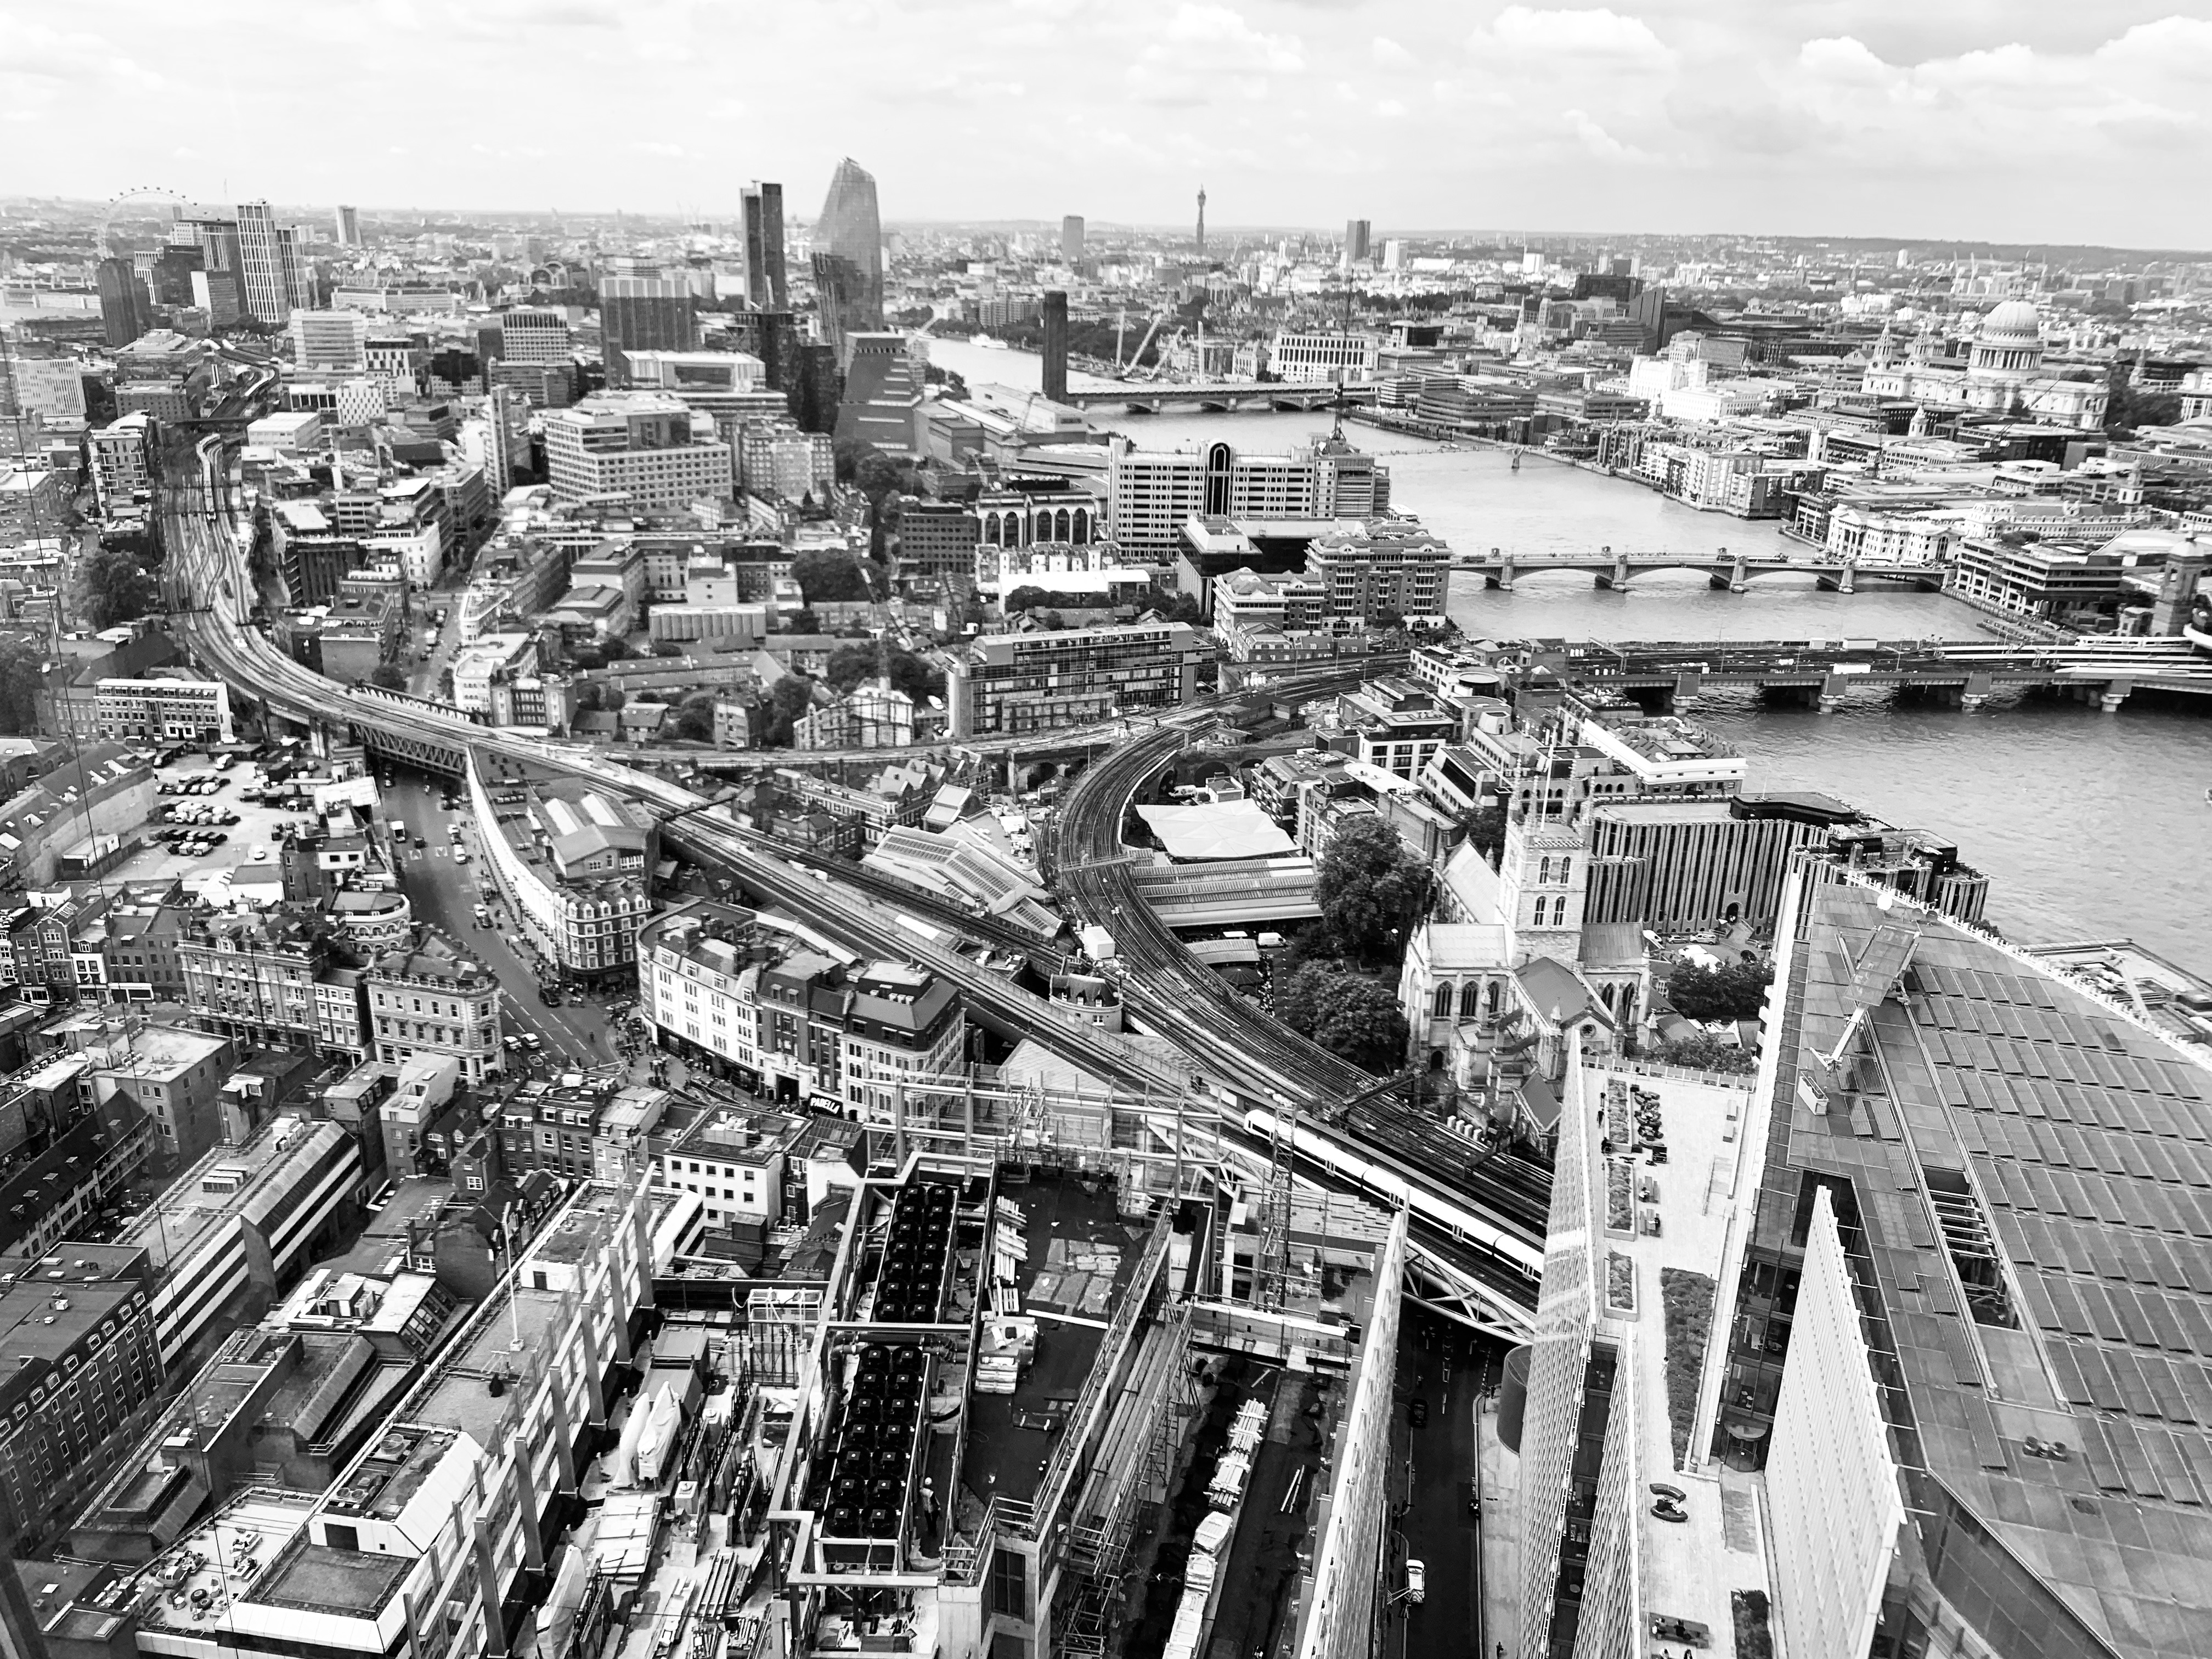 Ariel view of Bankside from the Shard, London